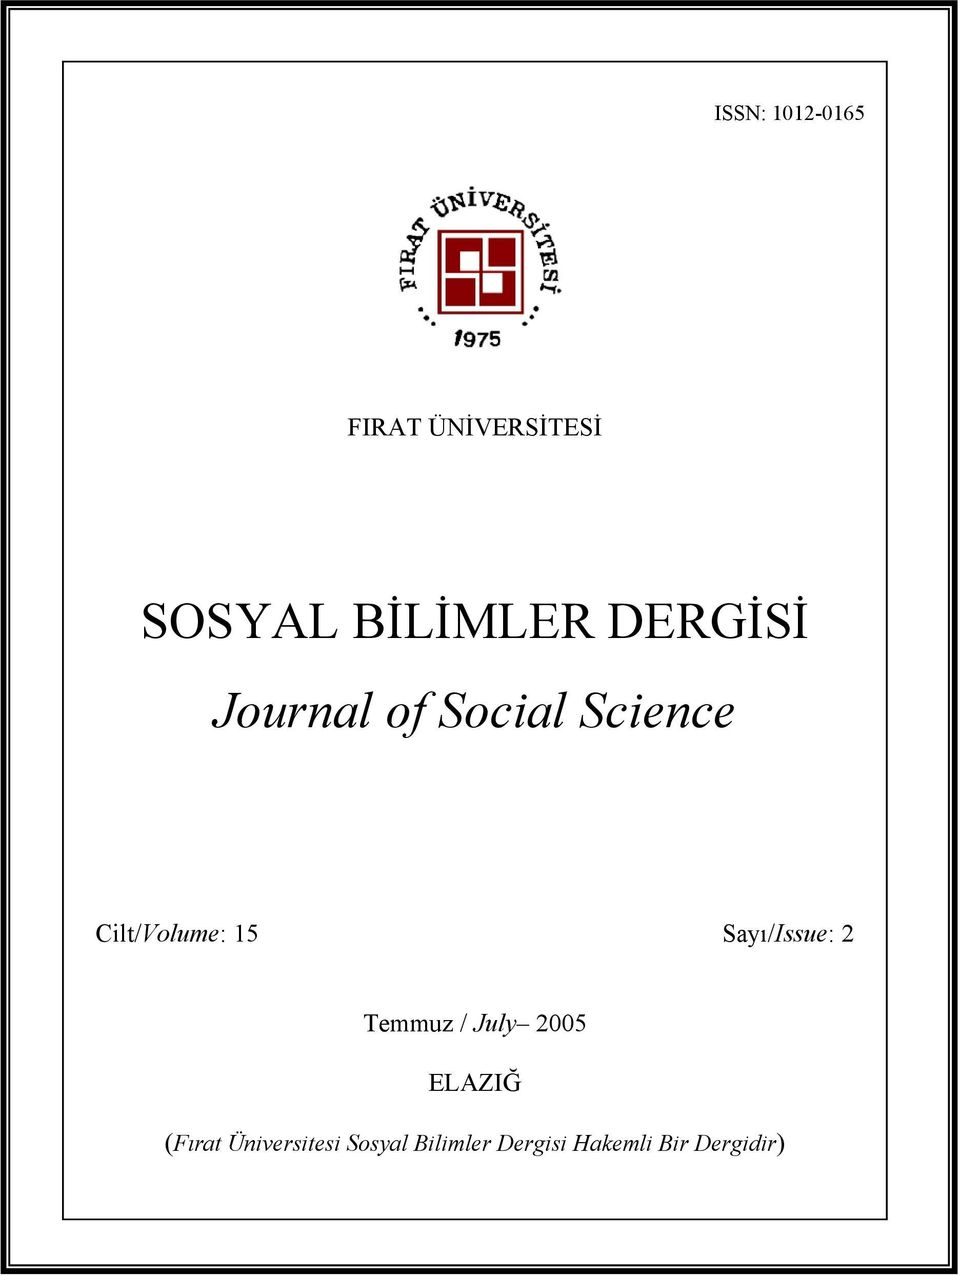 of Social Science Cilt/Volume: 15 Sayı/Issue: 2